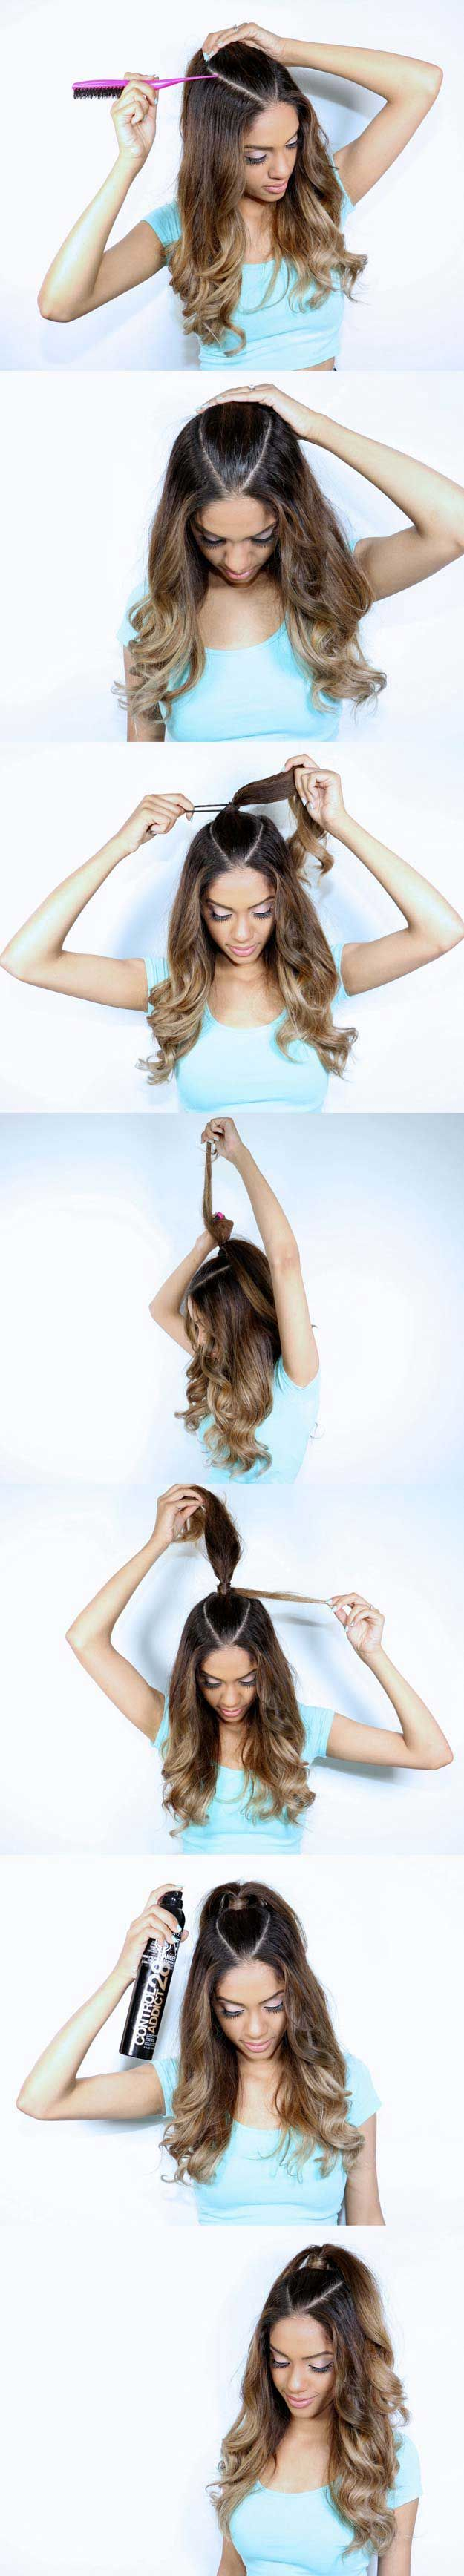 Amazing Half Up-Half Down Hairstyles For Long Hair - Ariana Grande Inspired Hair...